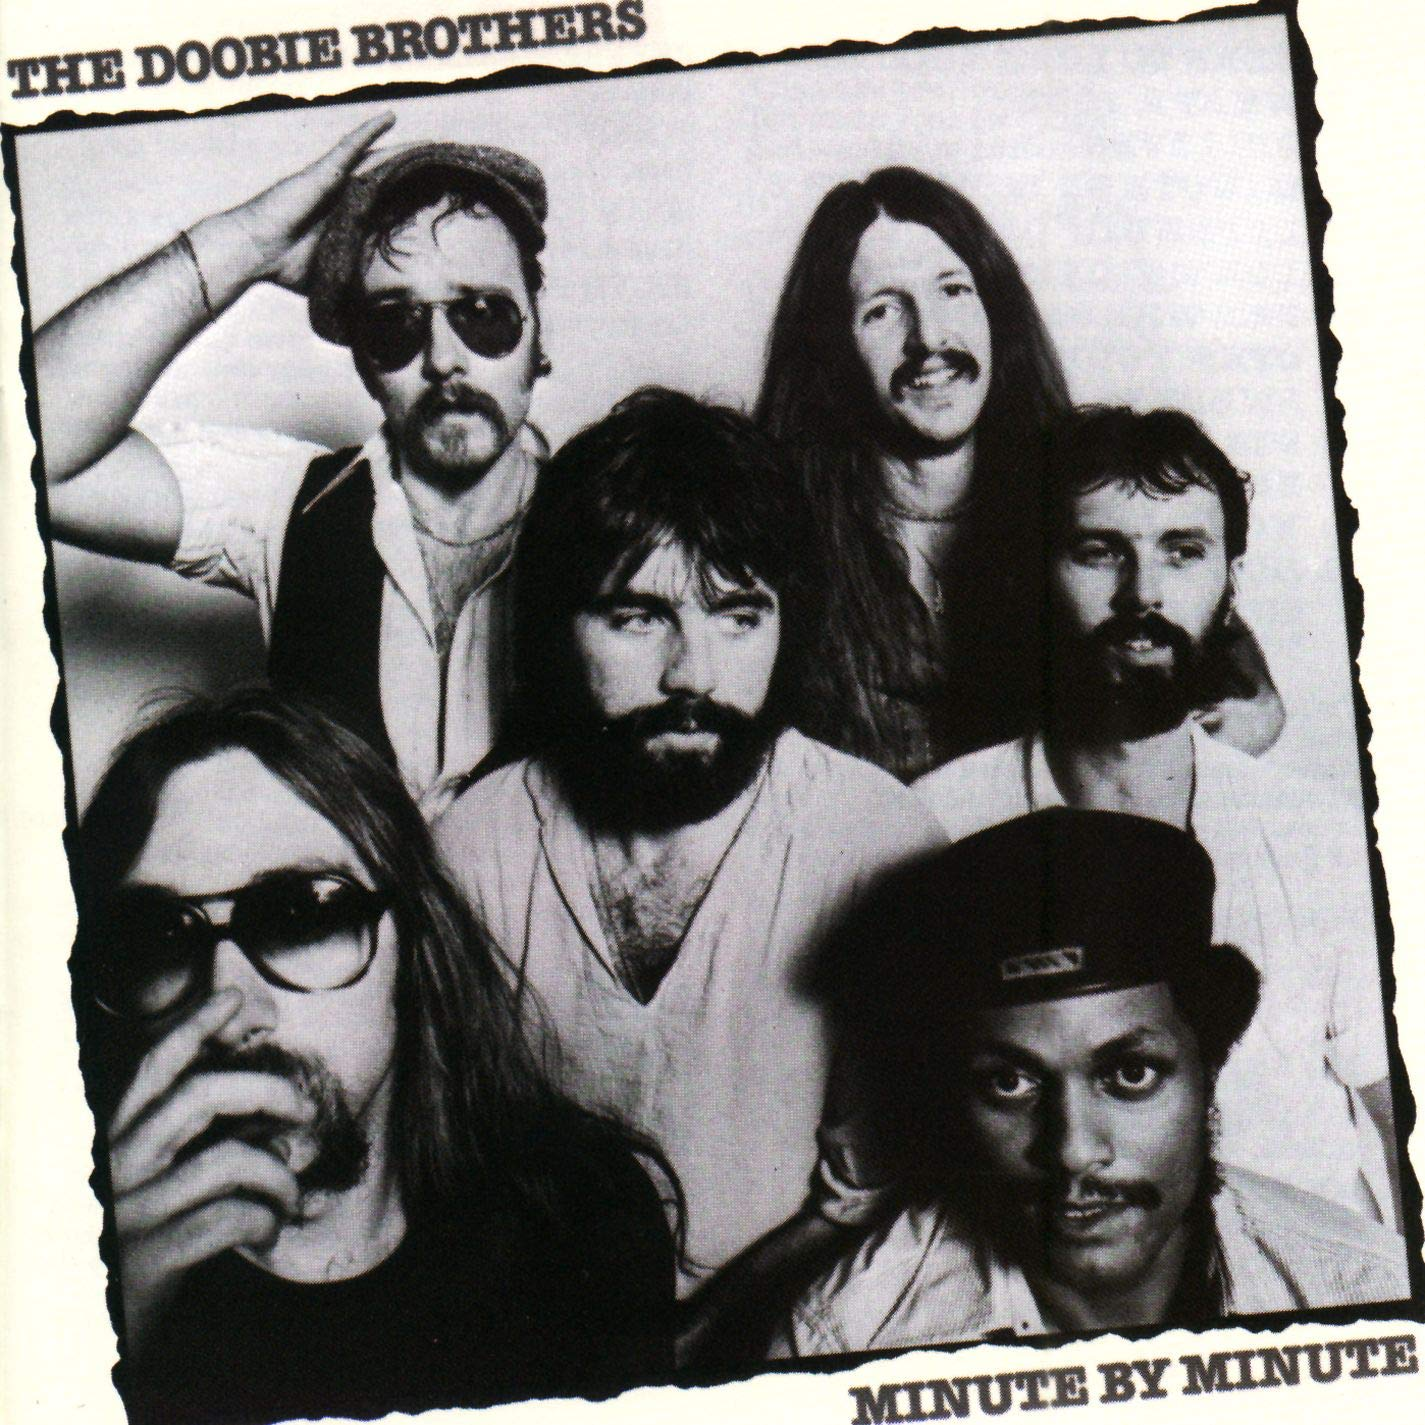 The Doobie Brothers Minute by Minute Album Cover - Adsum